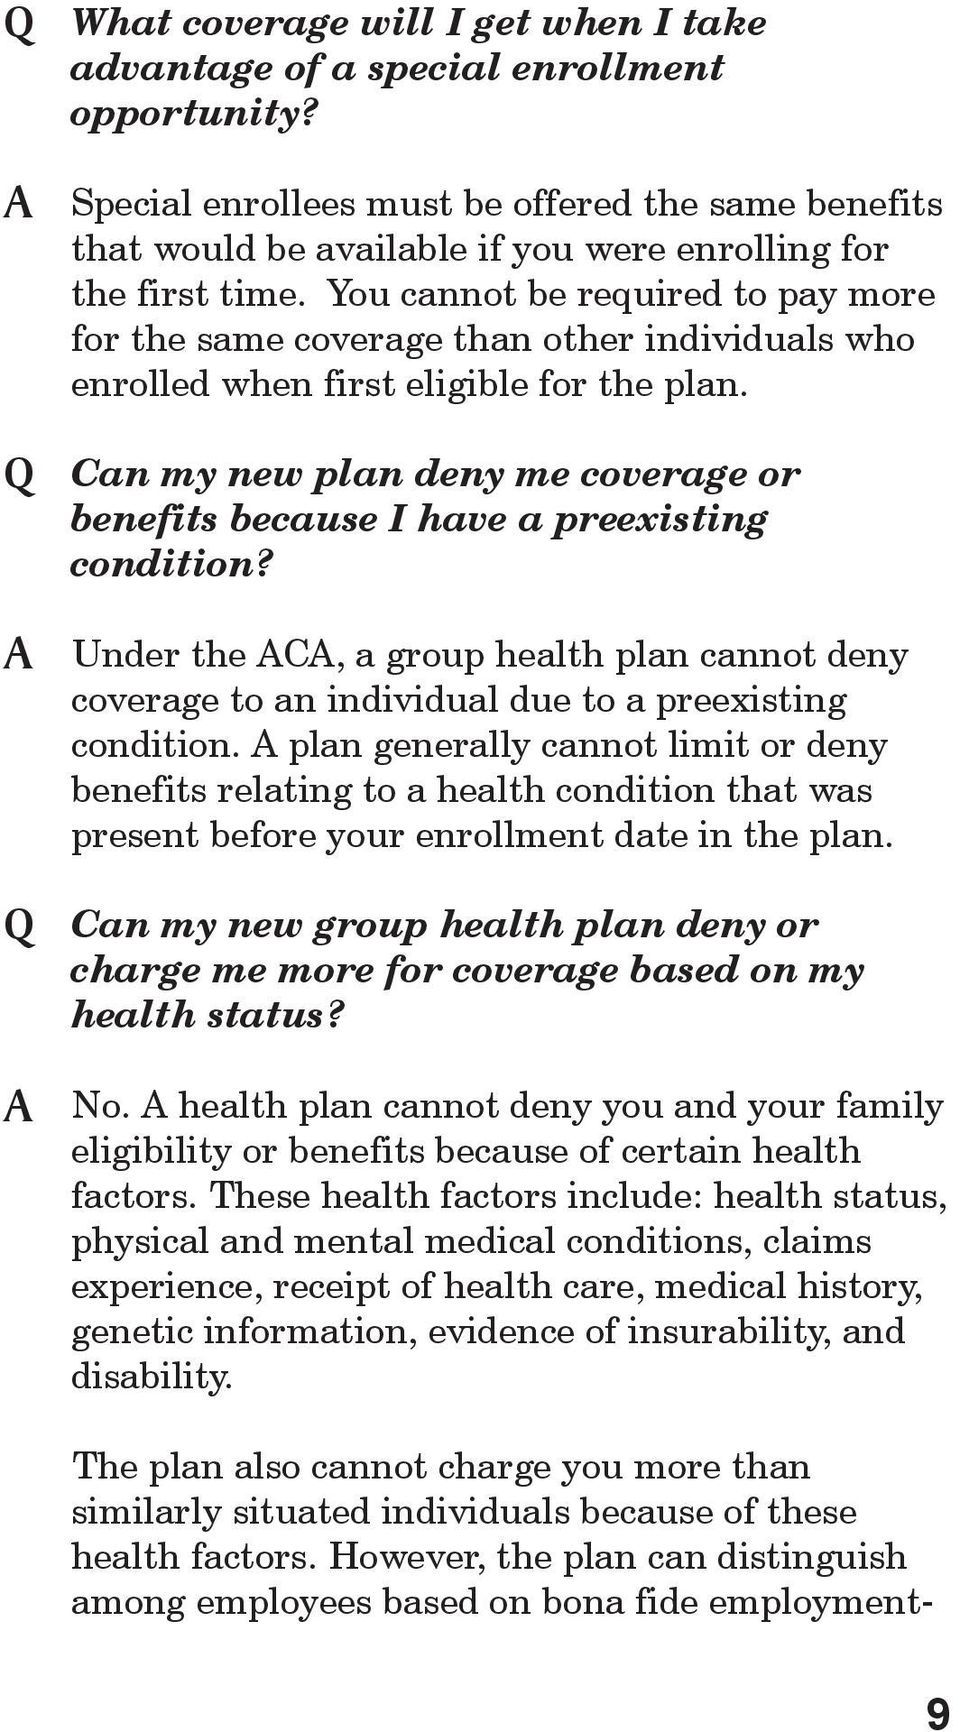 You cannot be required to pay more for the same coverage than other individuals who enrolled when first eligible for the plan.